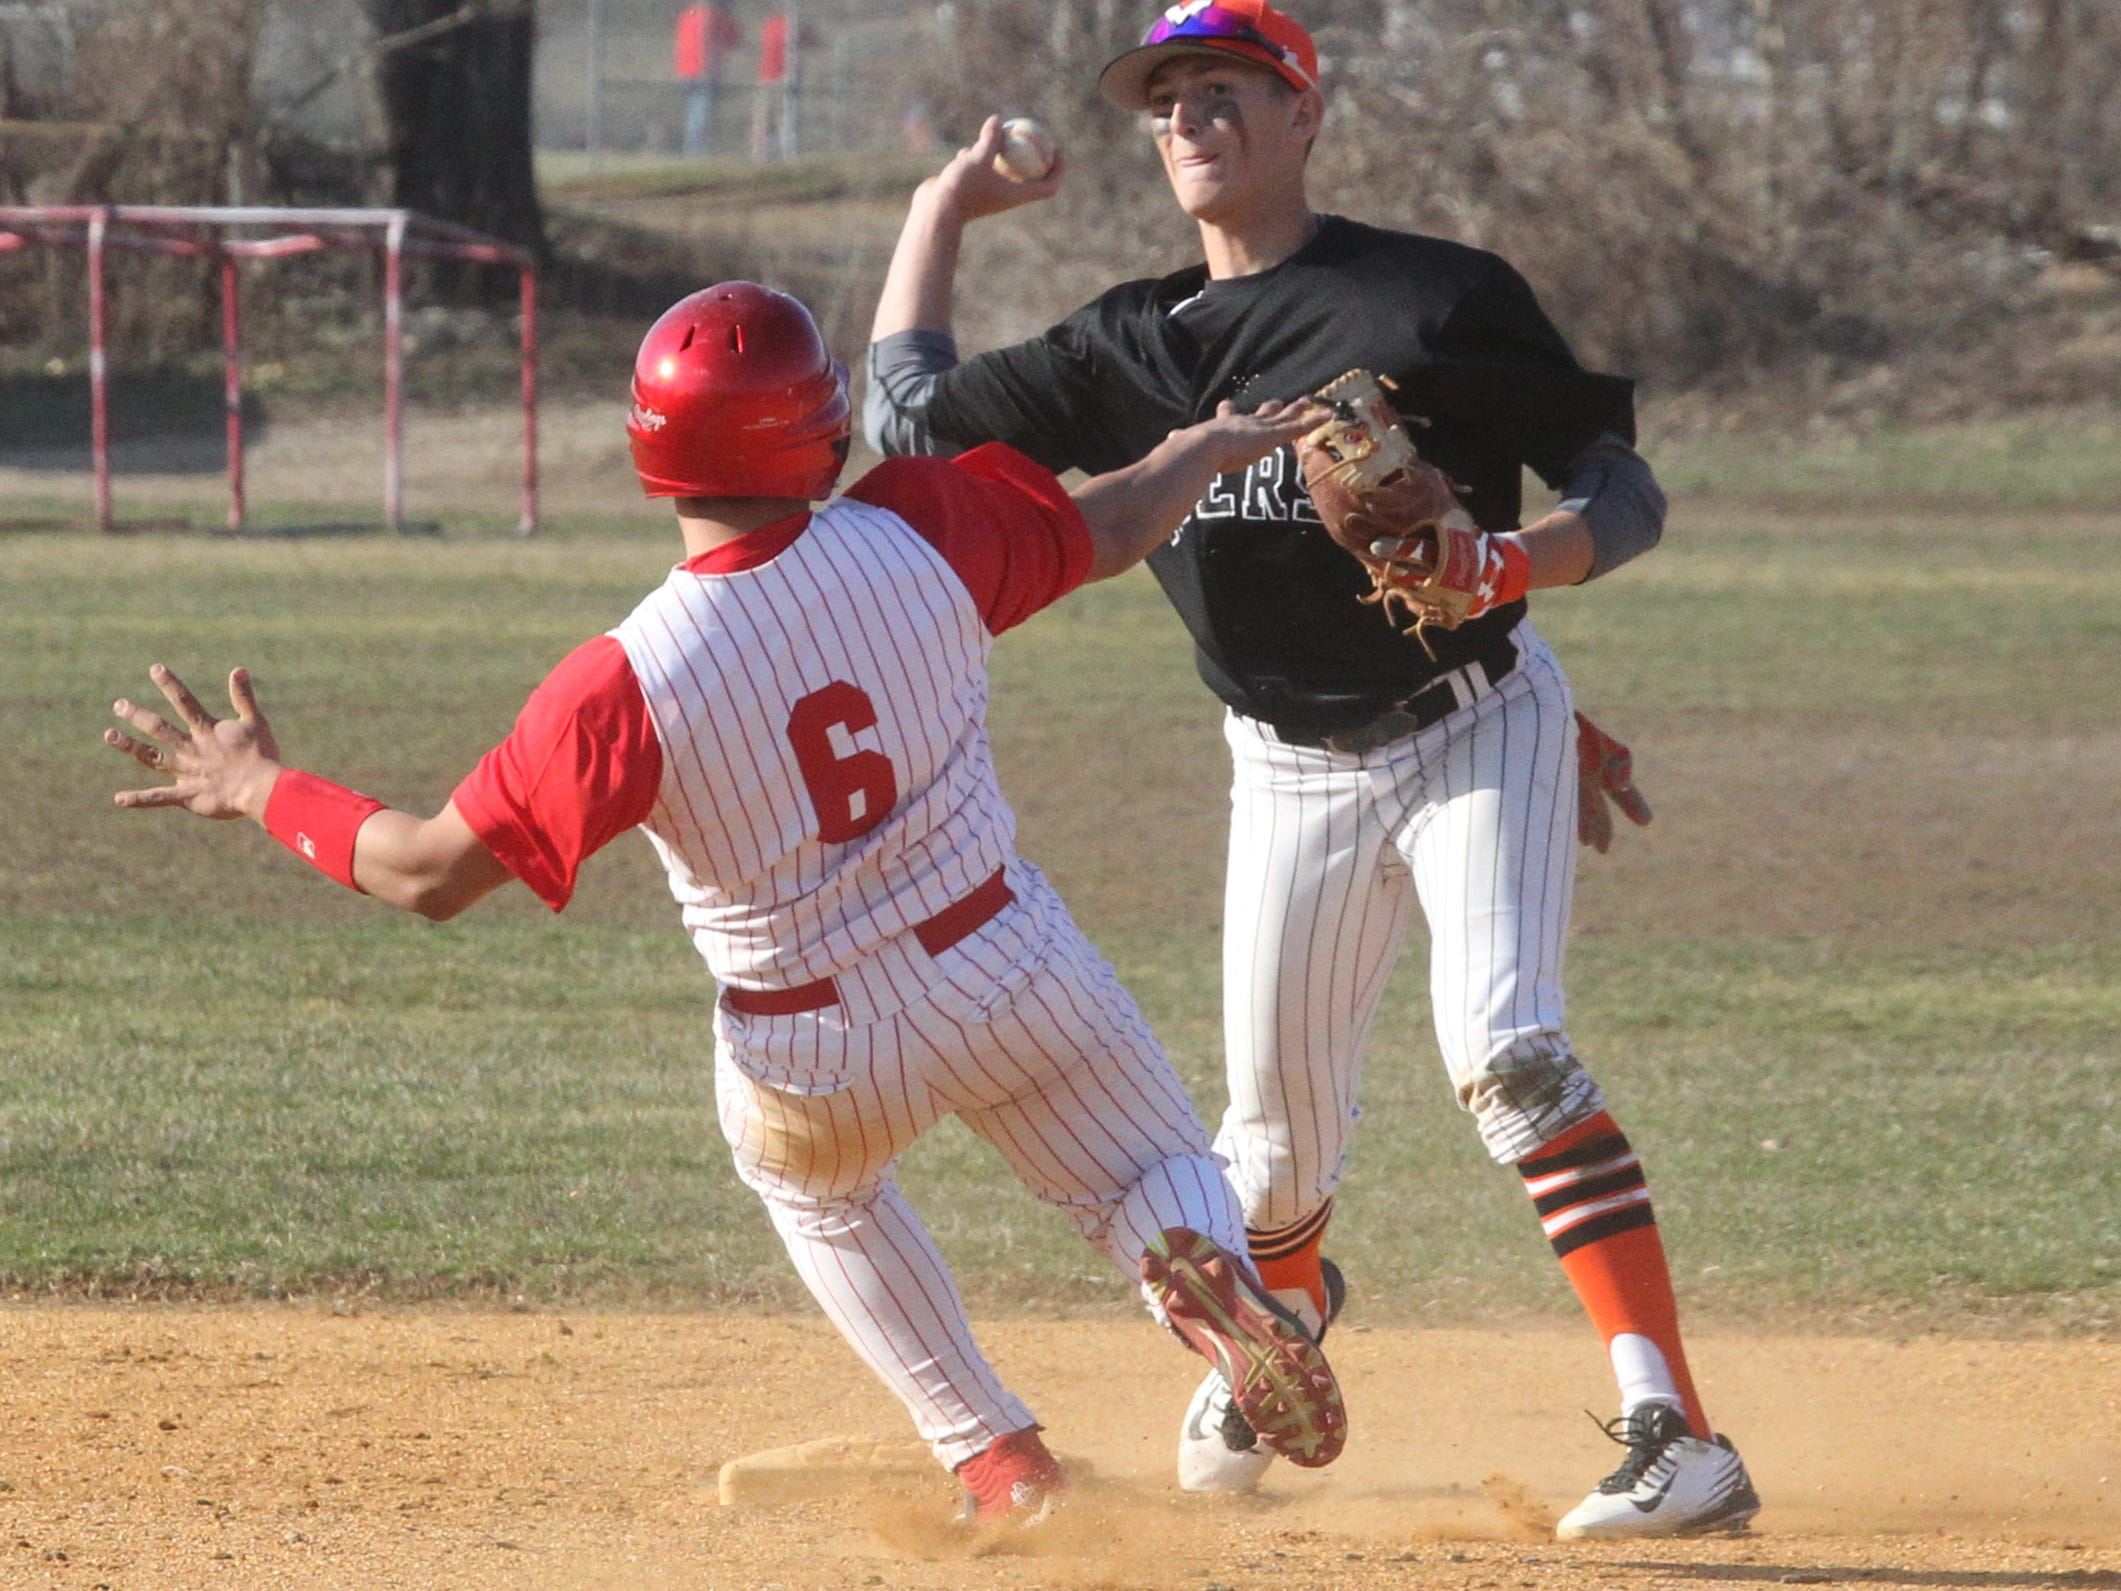 Mamaroneck's Anthony Pecora forces out North Rockland's Julio Rebolledo and throws to first for a double play during their game at North Rockland Apr. 6, 2015. Mamaroneck won 3-2.